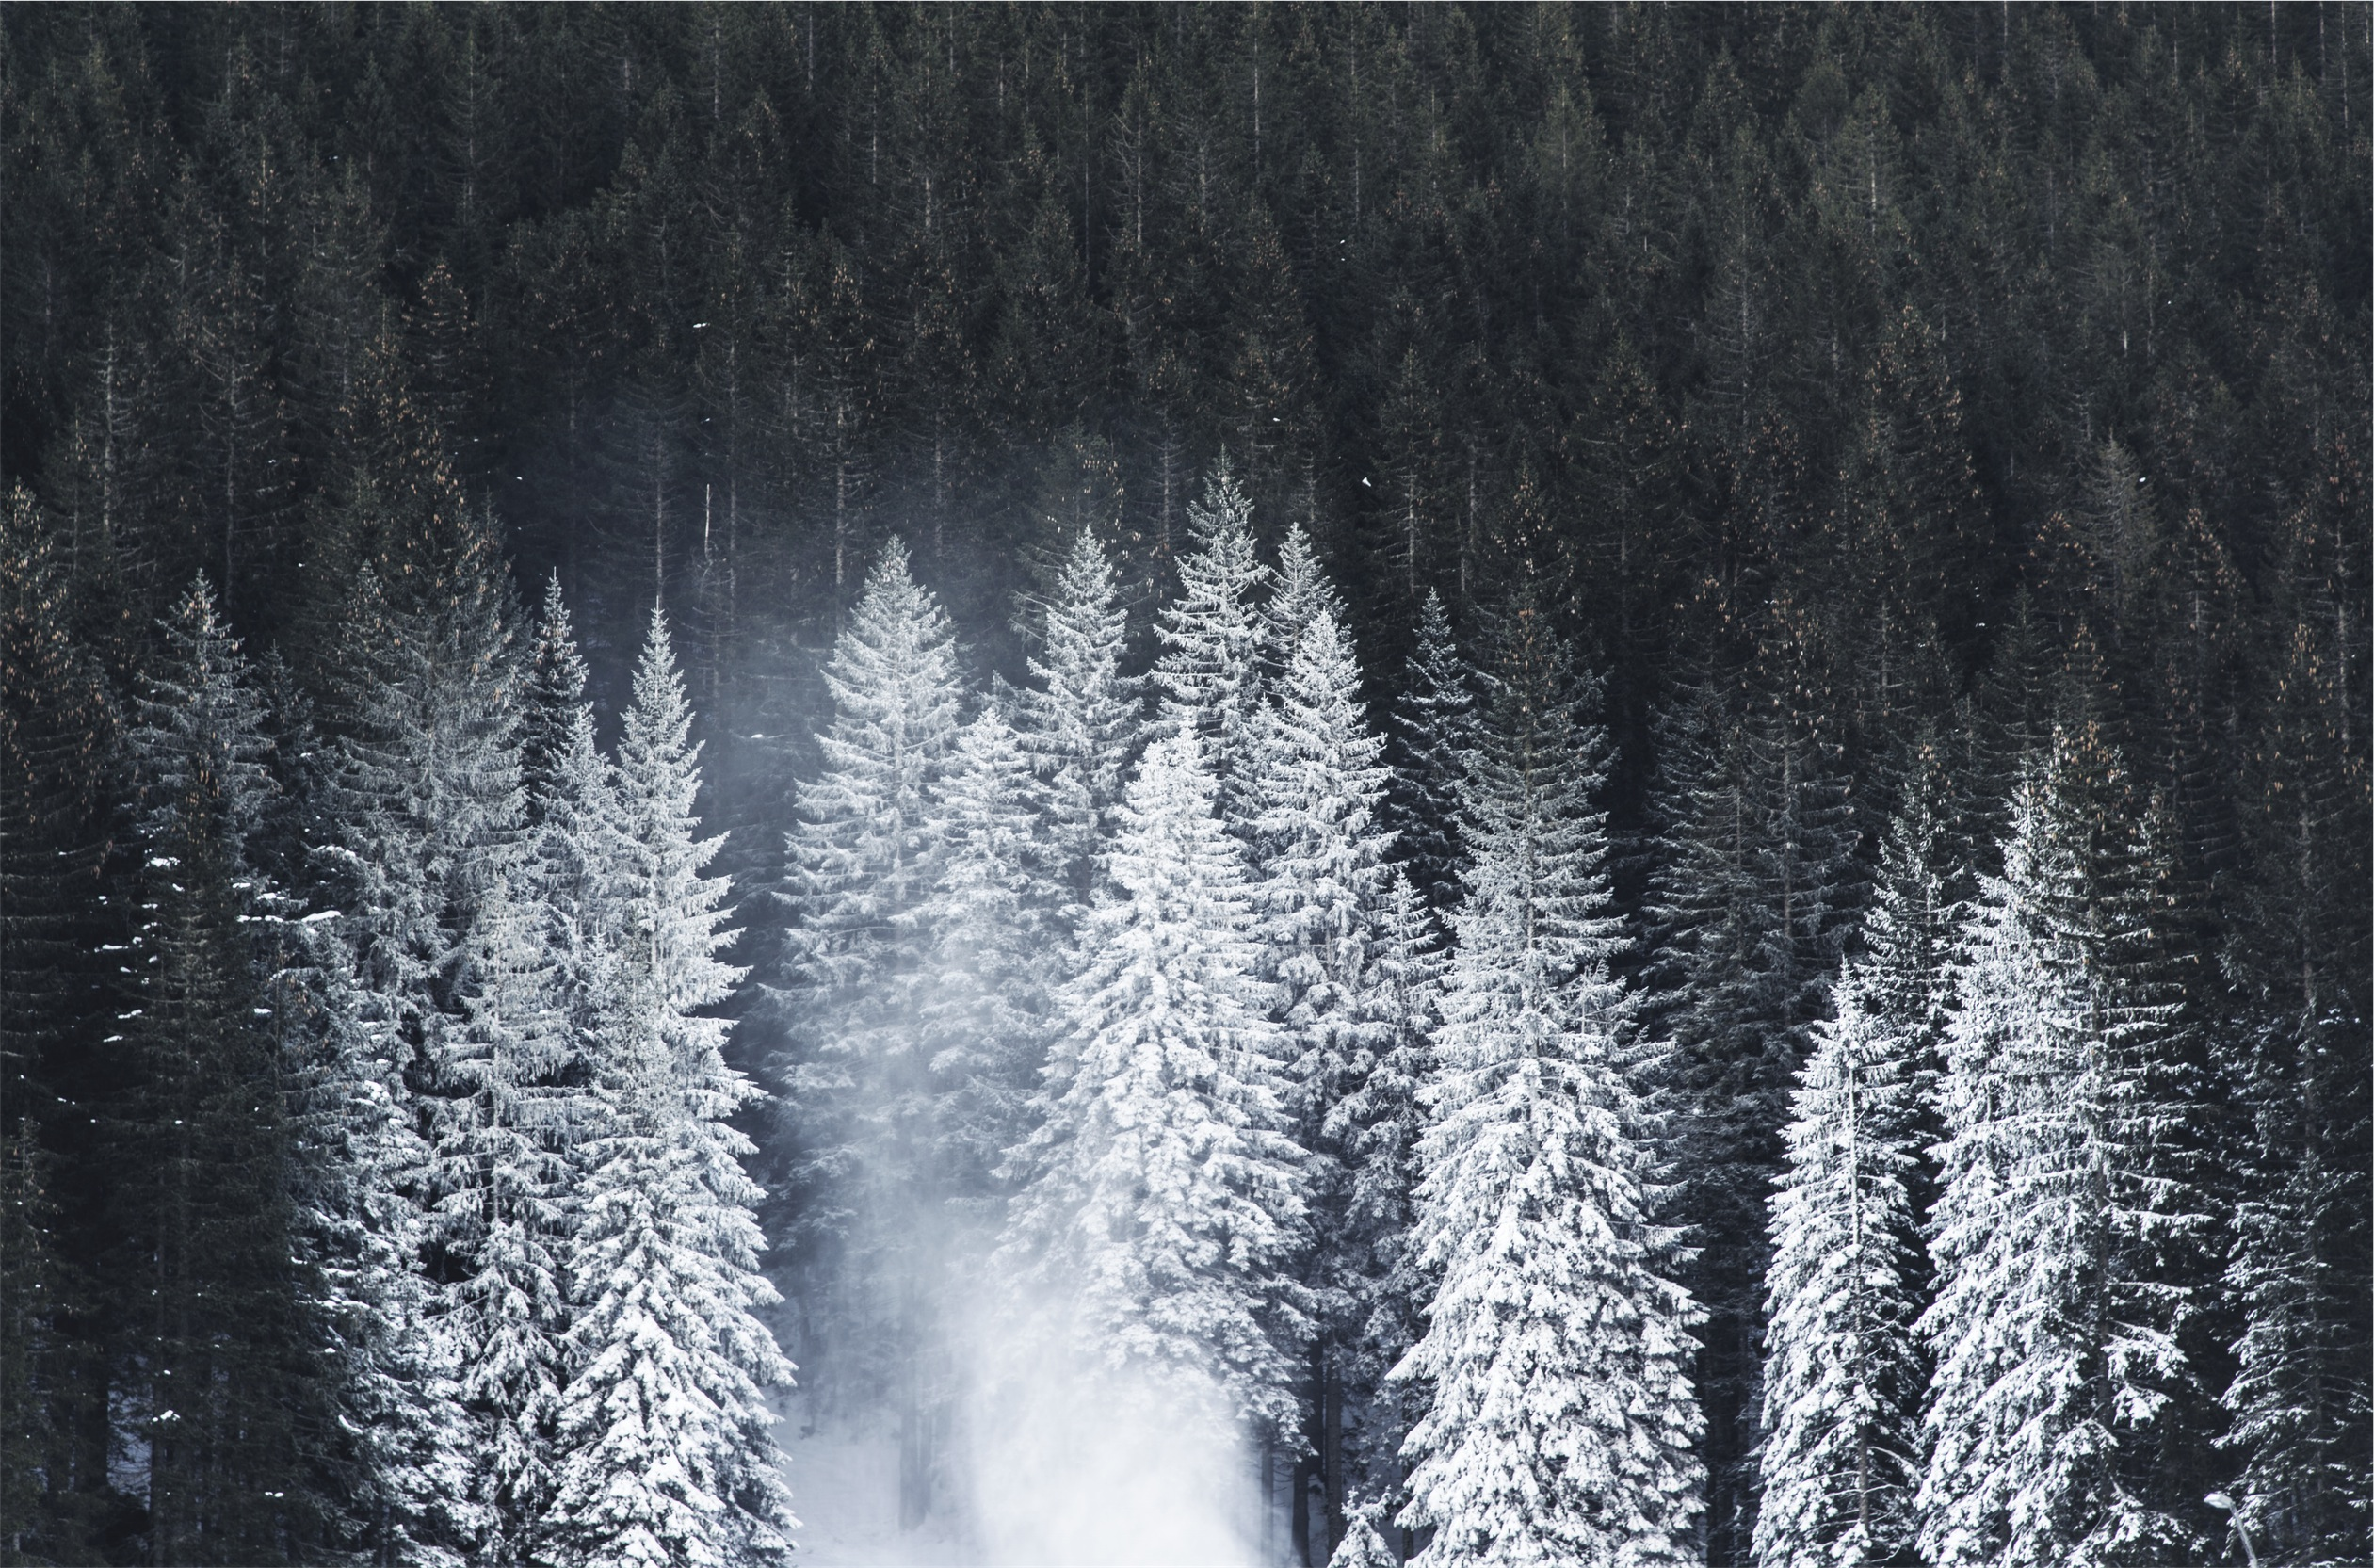 Snowy forest, forest, pine, snow covered pines, beautiful scenery, cold, snow